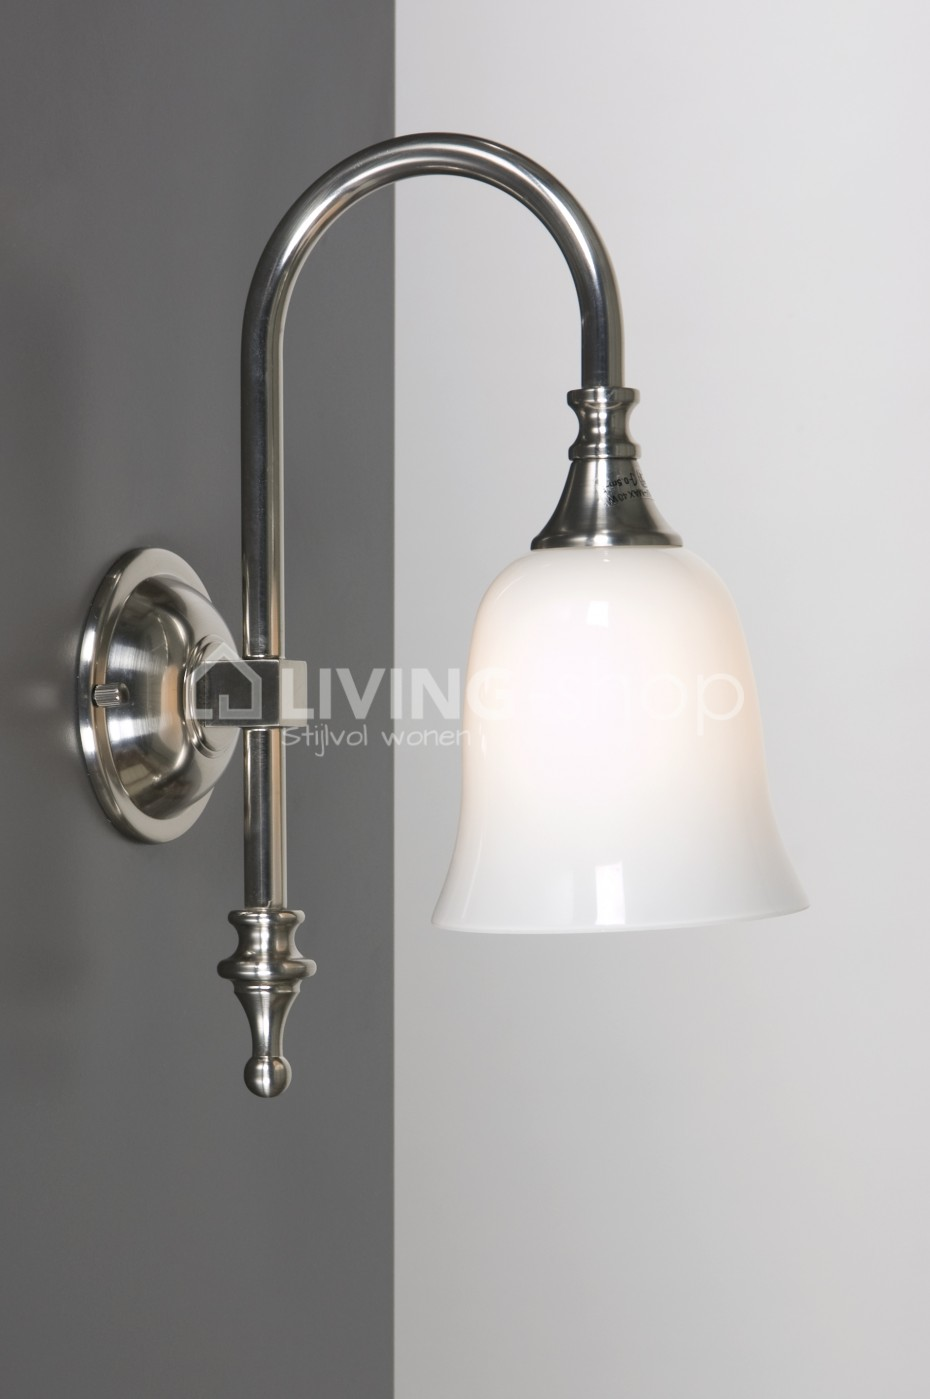 bath-classic-ip44-nickel-satin-dia11cm-l29xb21cm-incl-1x25w